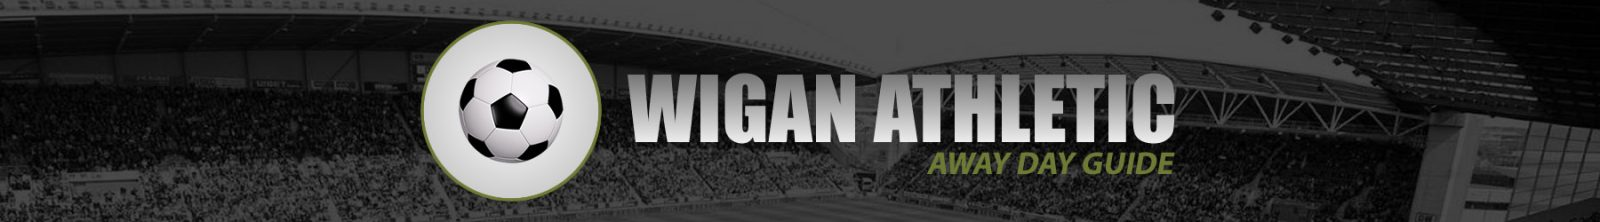 Wigan Athletic Away